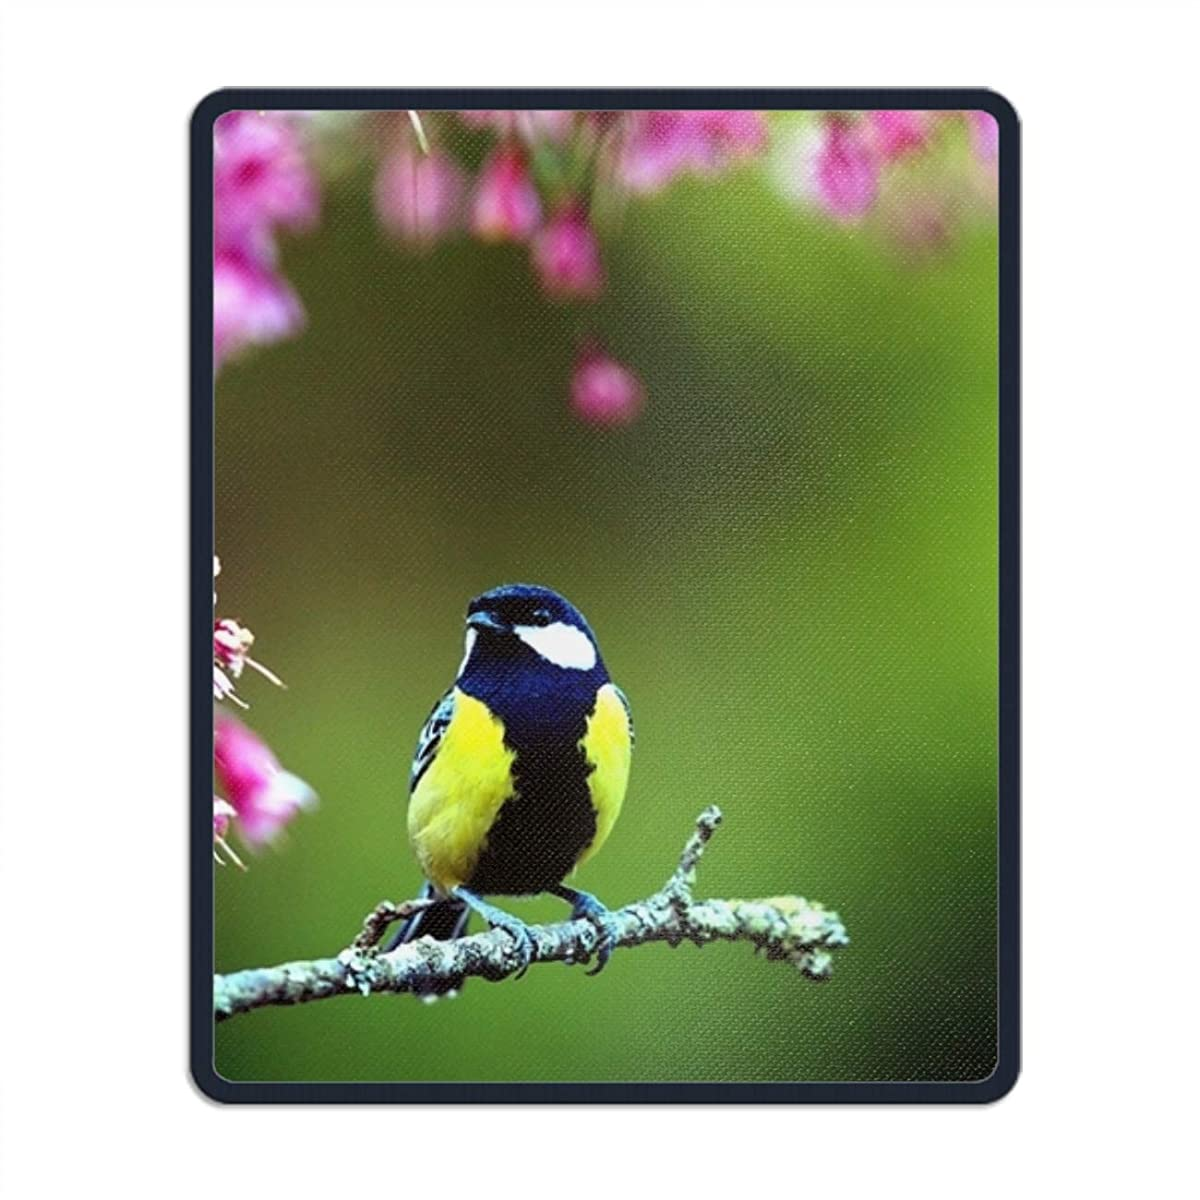 SSOIU Mouse pad,Personalized Unique Design Oblong Shaped Mouse Pad Bird Spring Flowers